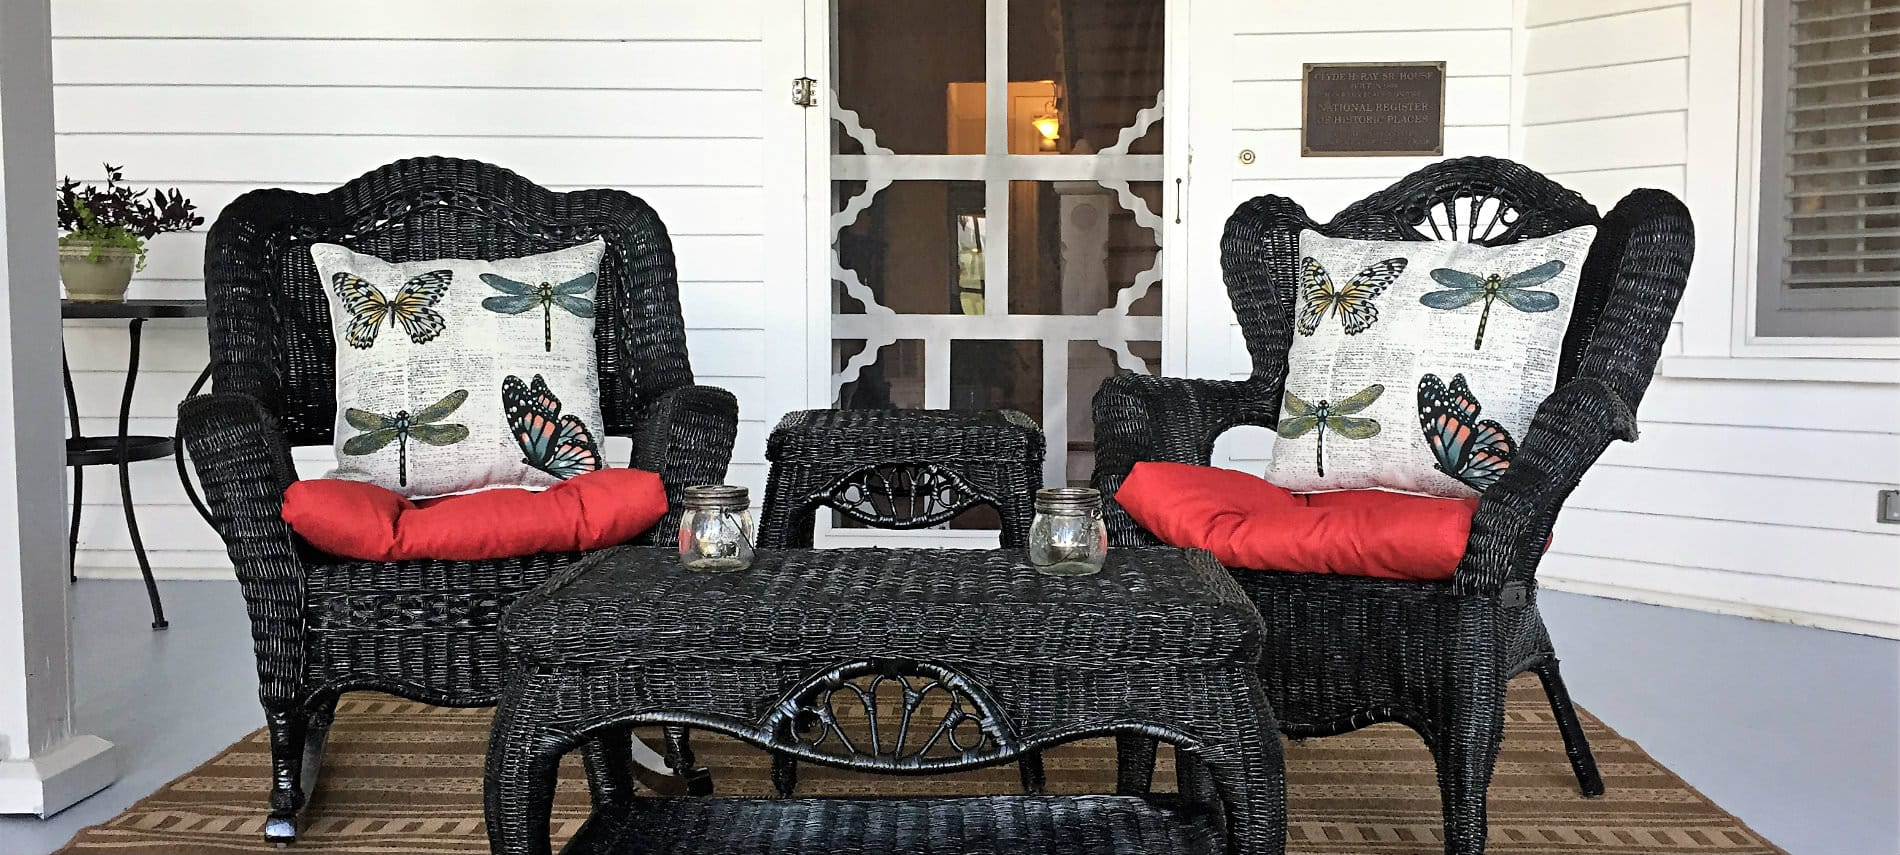 Two dark wicker chairs with coffee table and side table, red cushions and white pillows with dragonflies in front of screen door